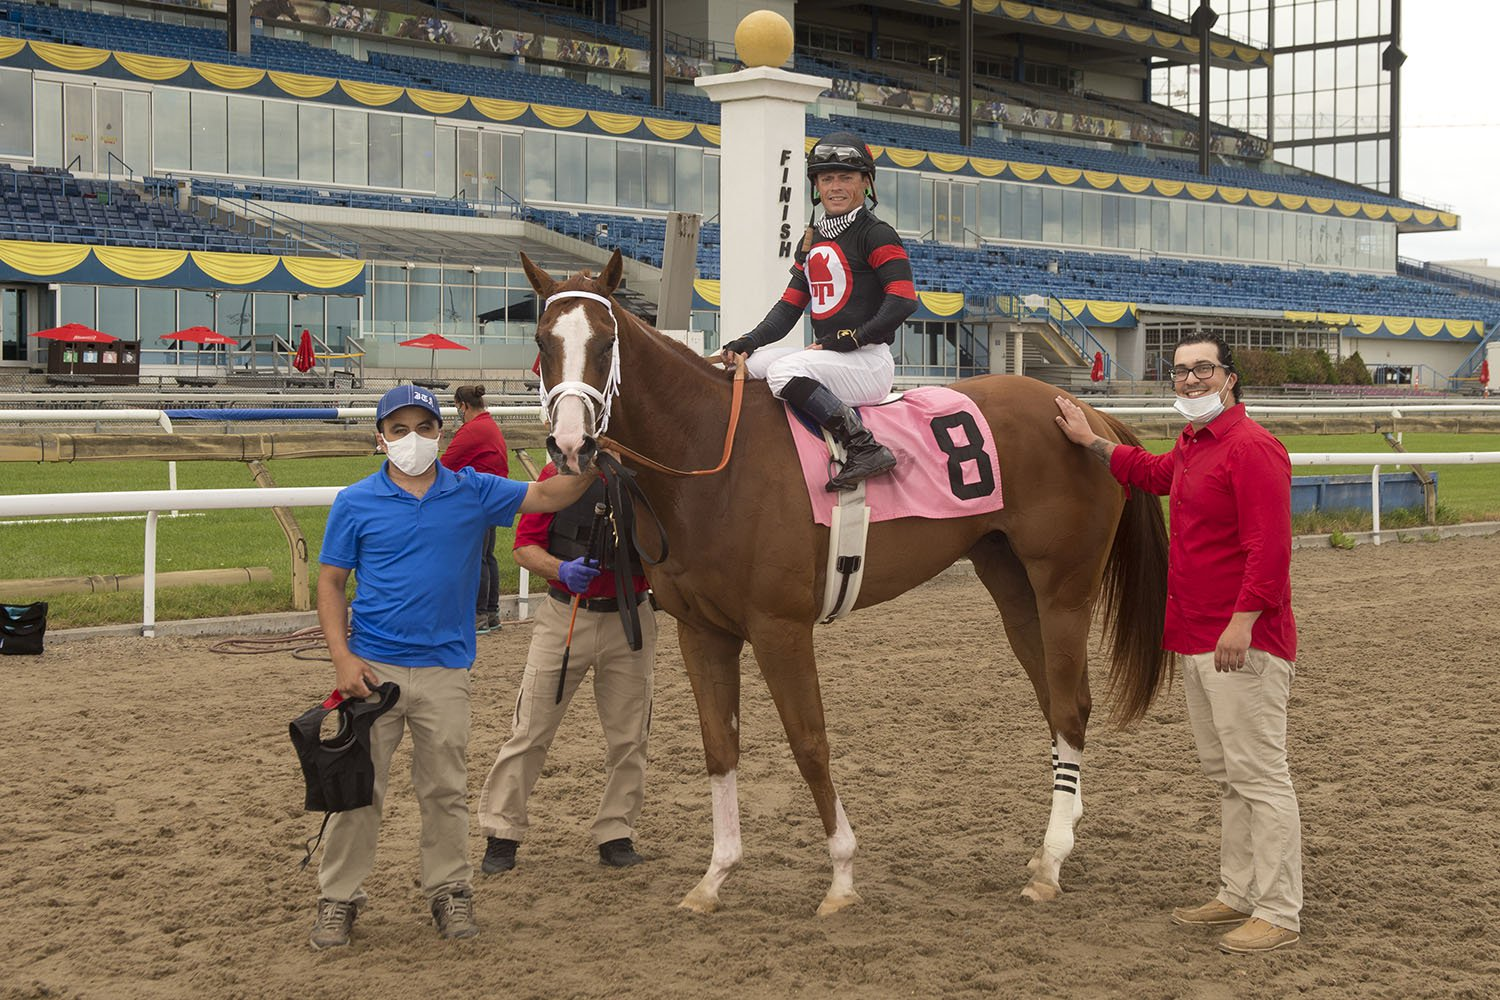 Trainer Jamie Attard (right) in the winner's circle celebrating a special victory by Red Hierarchy on July 12 at Woodbine Racetrack. (Michael Burns Photo)